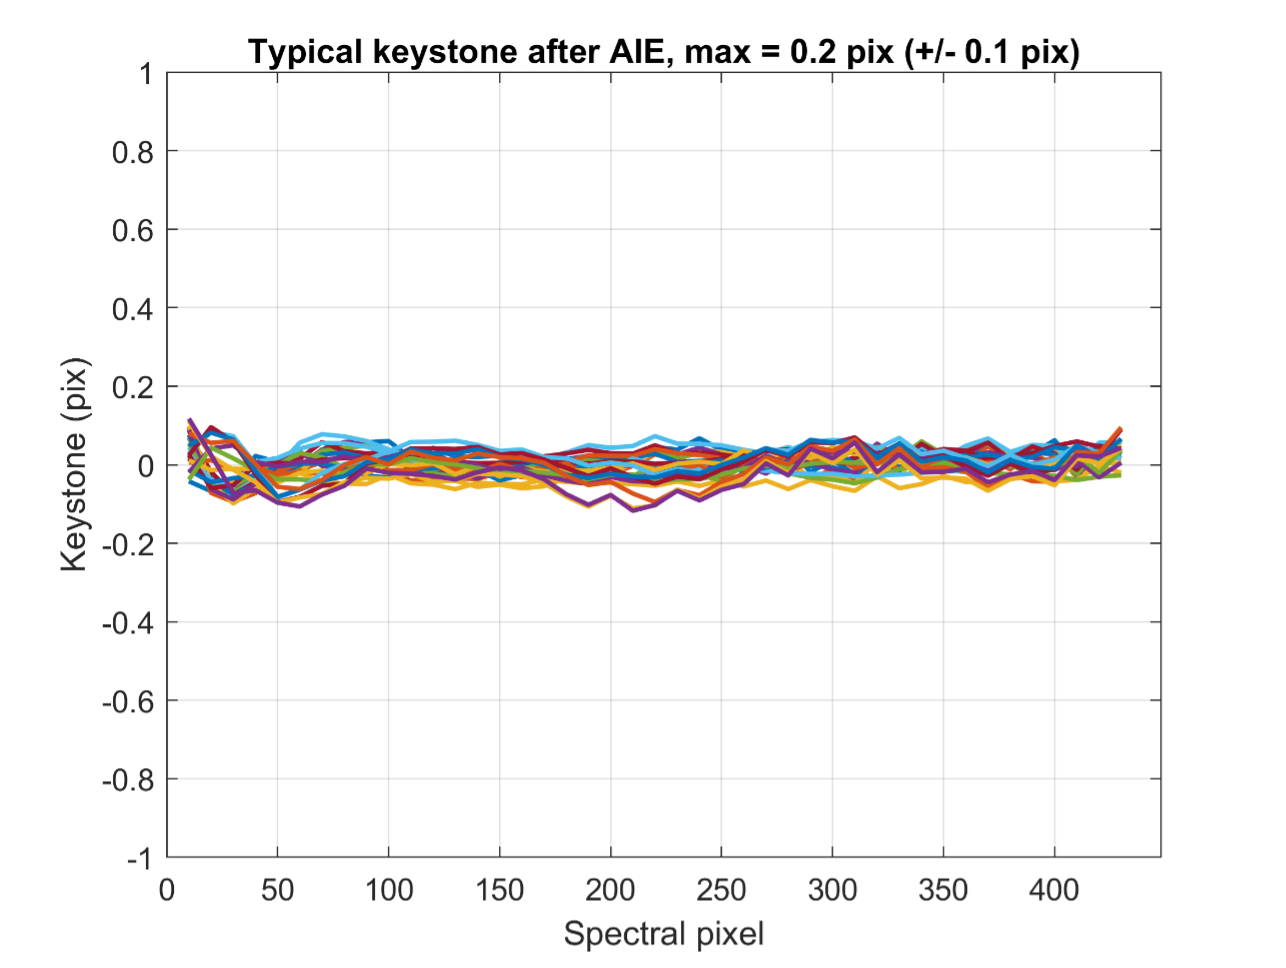 Figure 5: Typical Keystone after AIE correction, here for a Specim FX10 (which contains 448 spectral pixels)